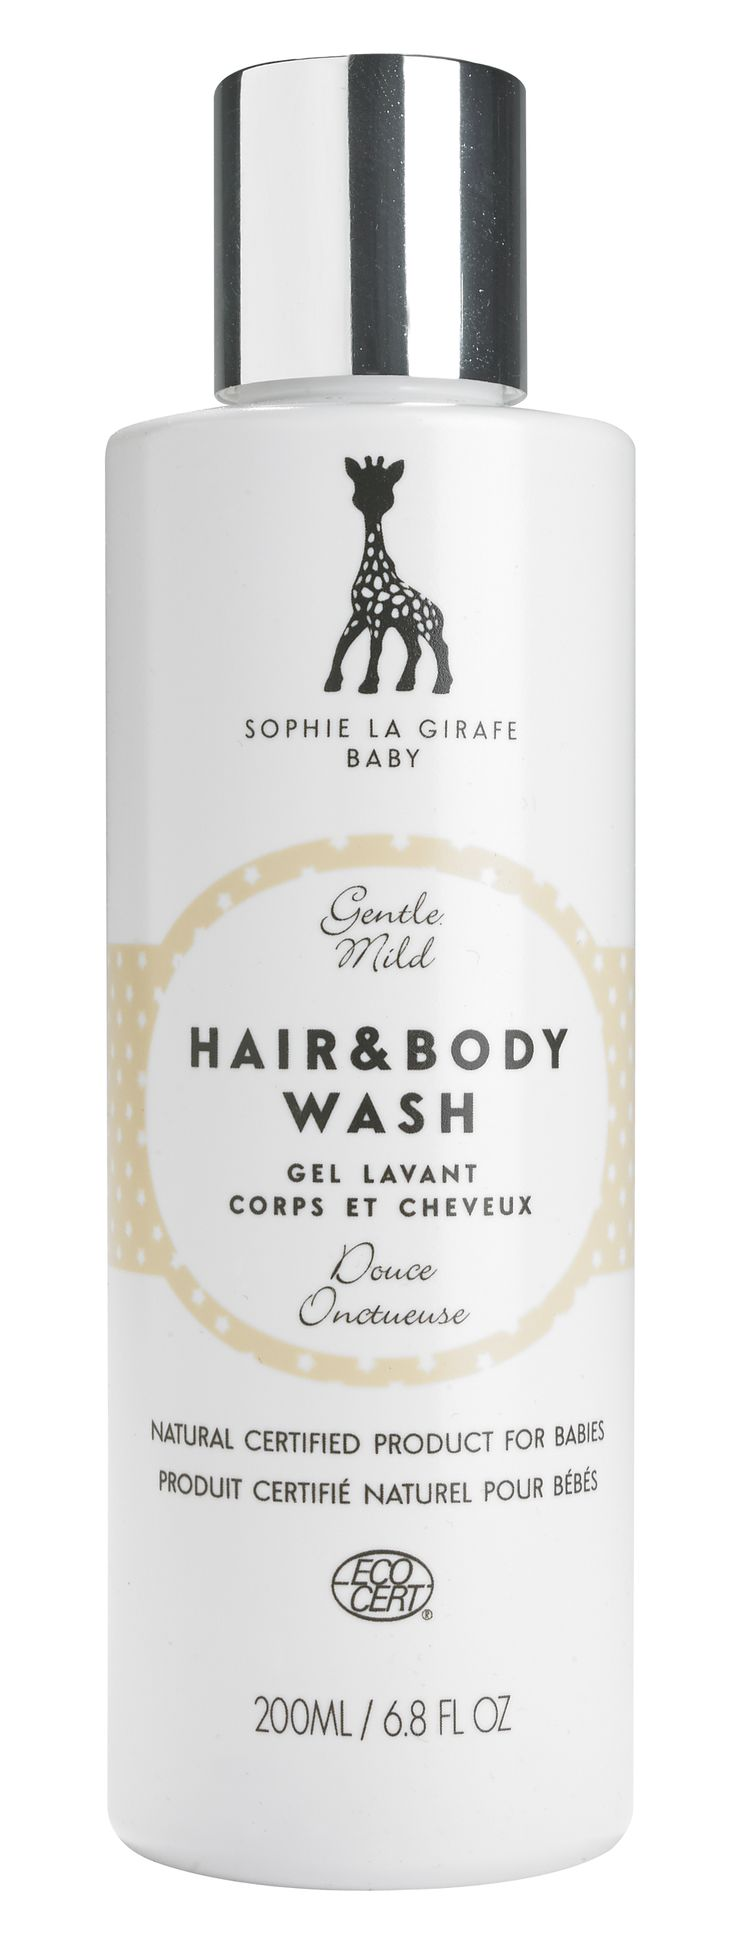 Gentle, awarded skincare from the one and only Sophie la girafe.   Ecocert-certified all over shampoo with mild sophisticated natural scent. No EU-allergens. Our clients just love it! Whole family uses.   www.sophielagirafecosmetics.com